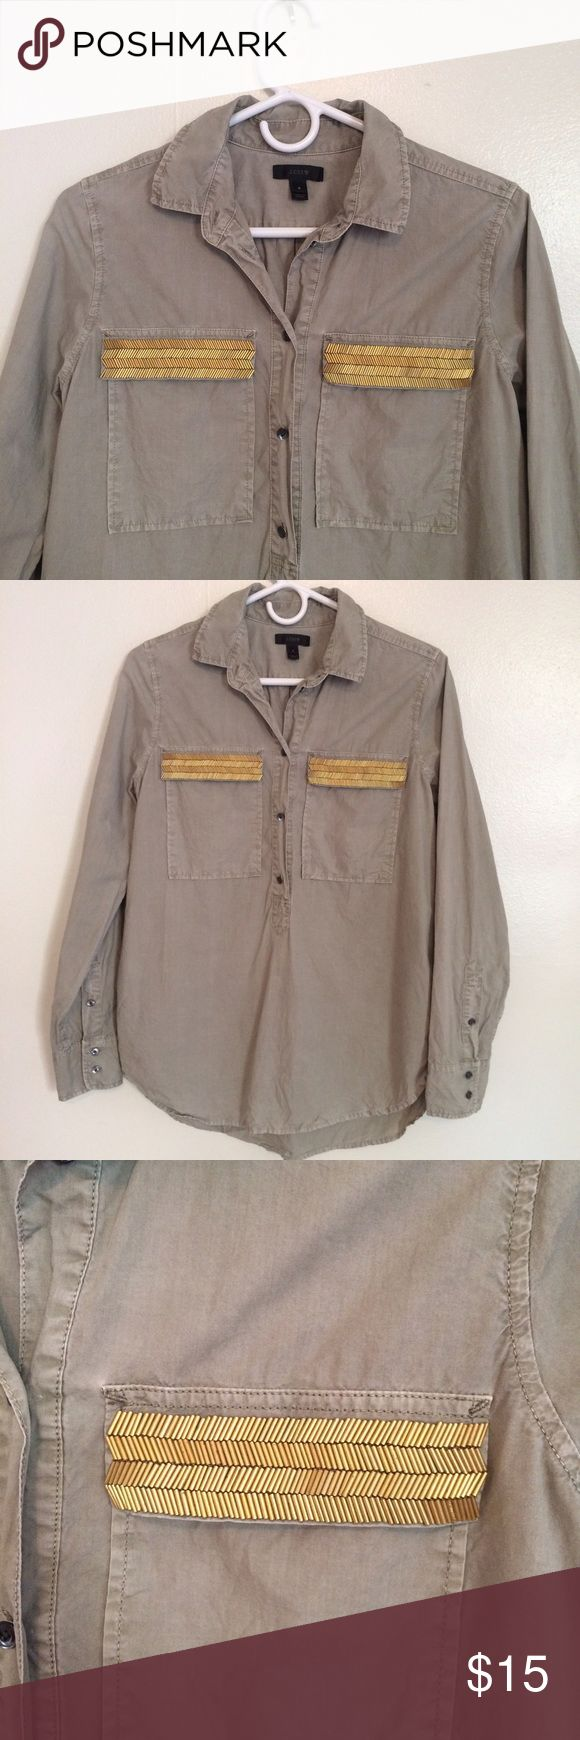 J Crew Cargo Shirt With Gold Beading Excellent Condition, worn 2x J. Crew Tops Button Down Shirts